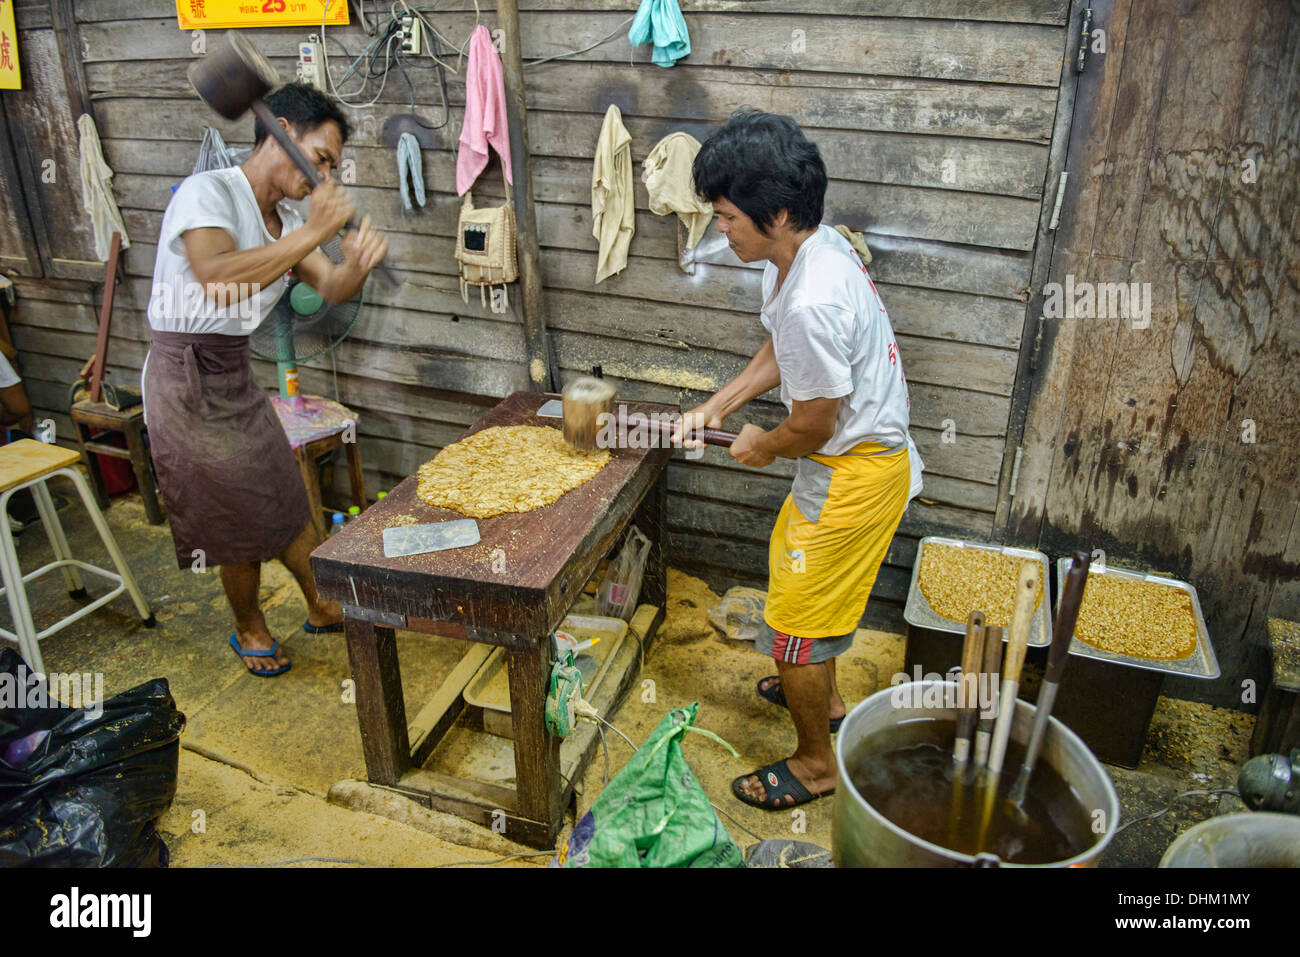 workers pounding peanut brittle at the Vegetarian Festival in Bangkok, Thailand - Stock Image